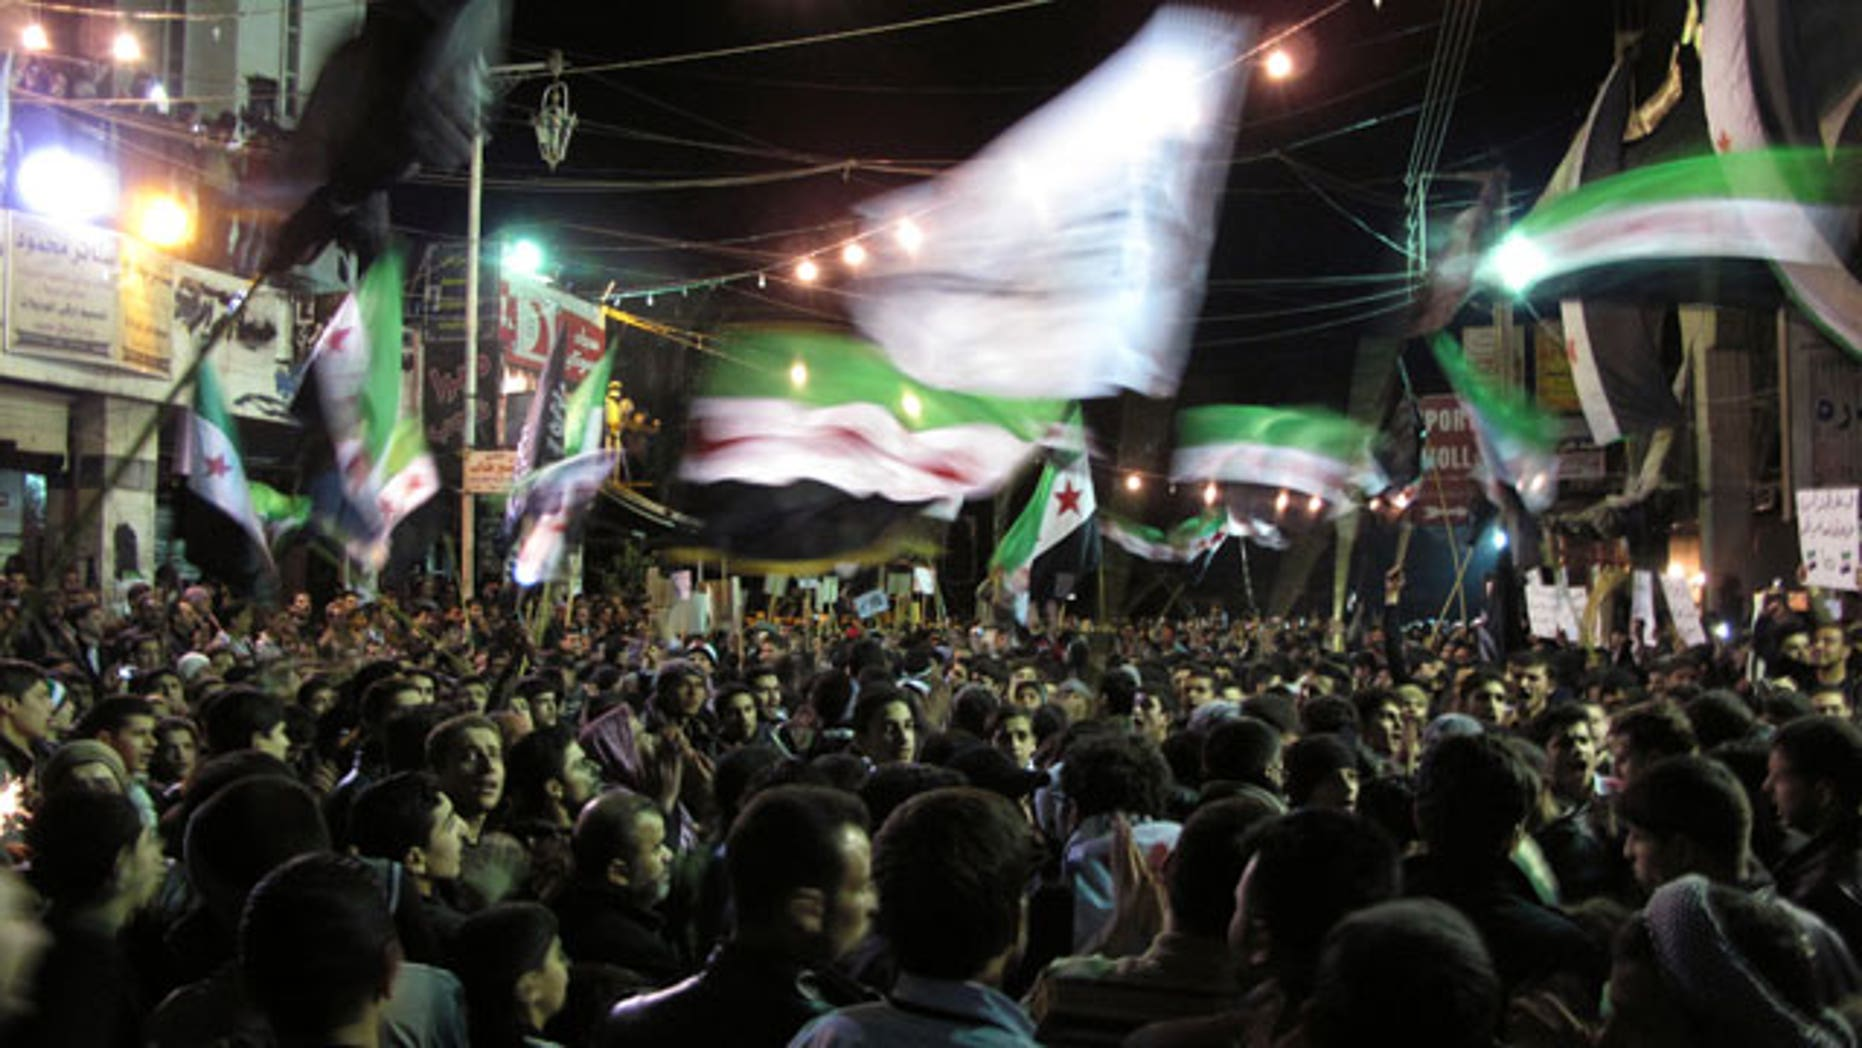 April 2, 2012: Syrians wave revolutionary flags and chant slogans at a night protest against President Bashar Assad in a neighborhood of Damascus, Syria.